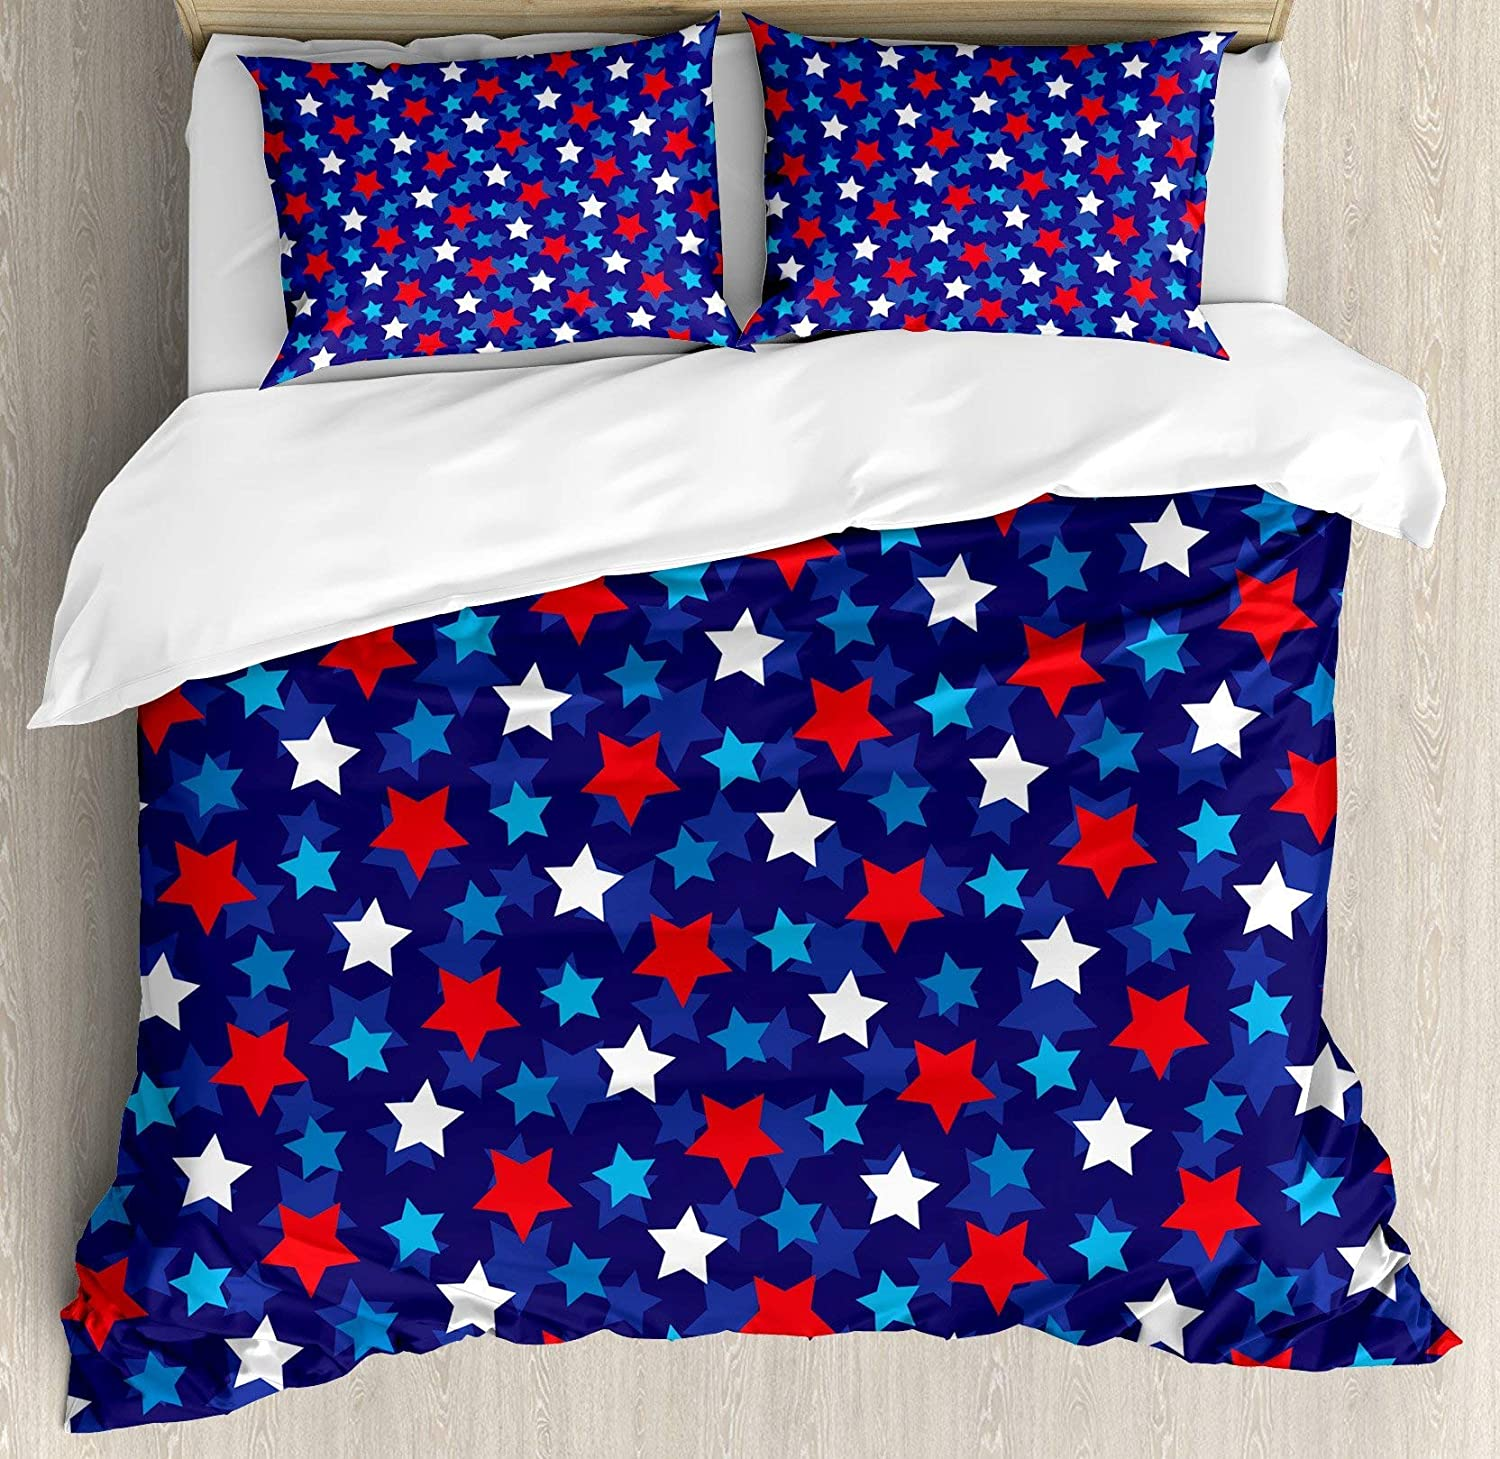 Navy bluee 4pc Bedding Set Queen Size, American Flag Inspired Patriotic Design with The Stars Image Floral Lightweight Microfiber Duvet Cover Set, Red White bluee and Dark bluee